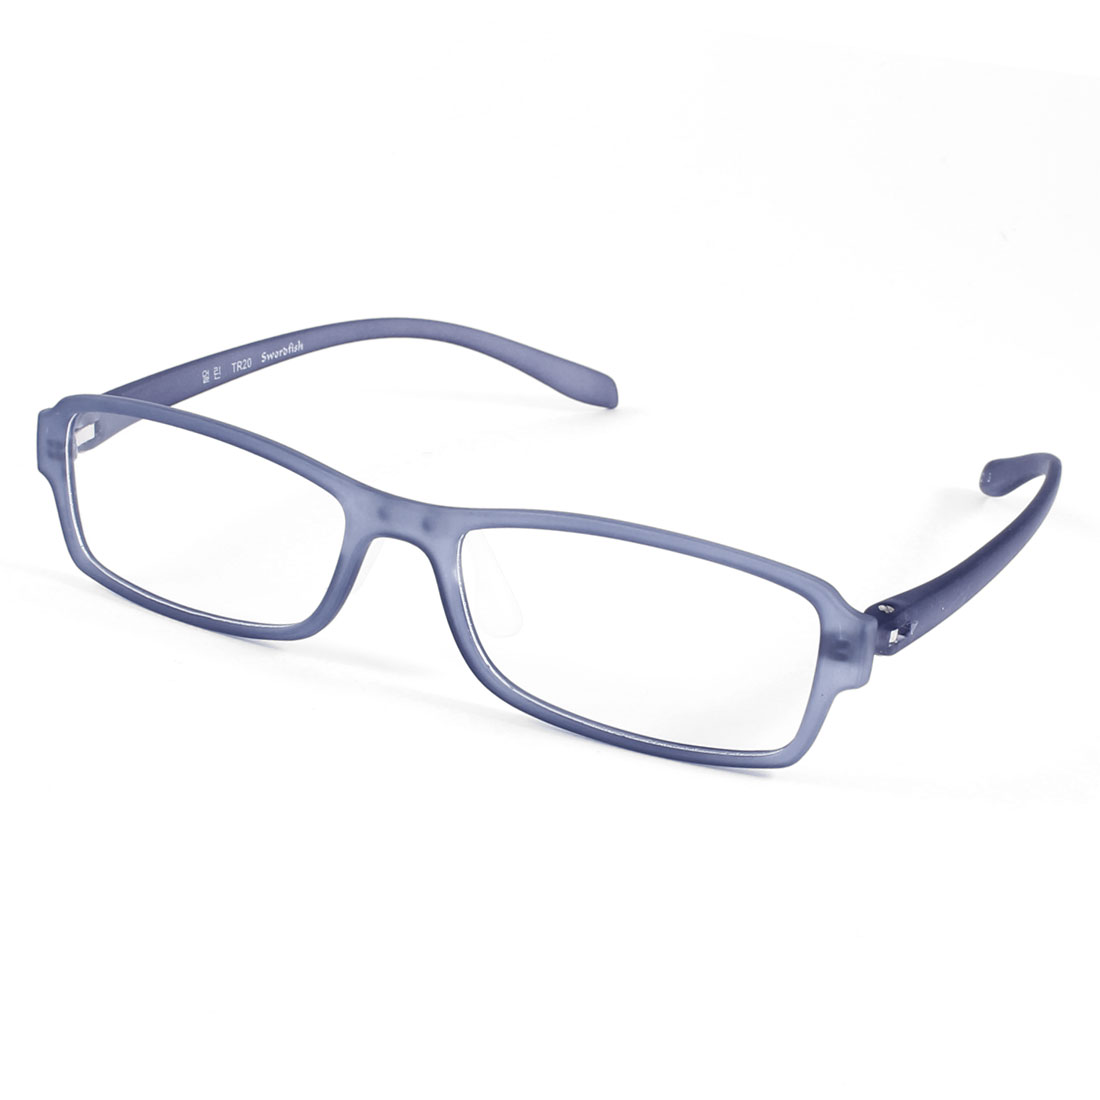 Steel Blue Plastic Arms Full Rim Frame Single Bridge Clear Lens Glasses for Man